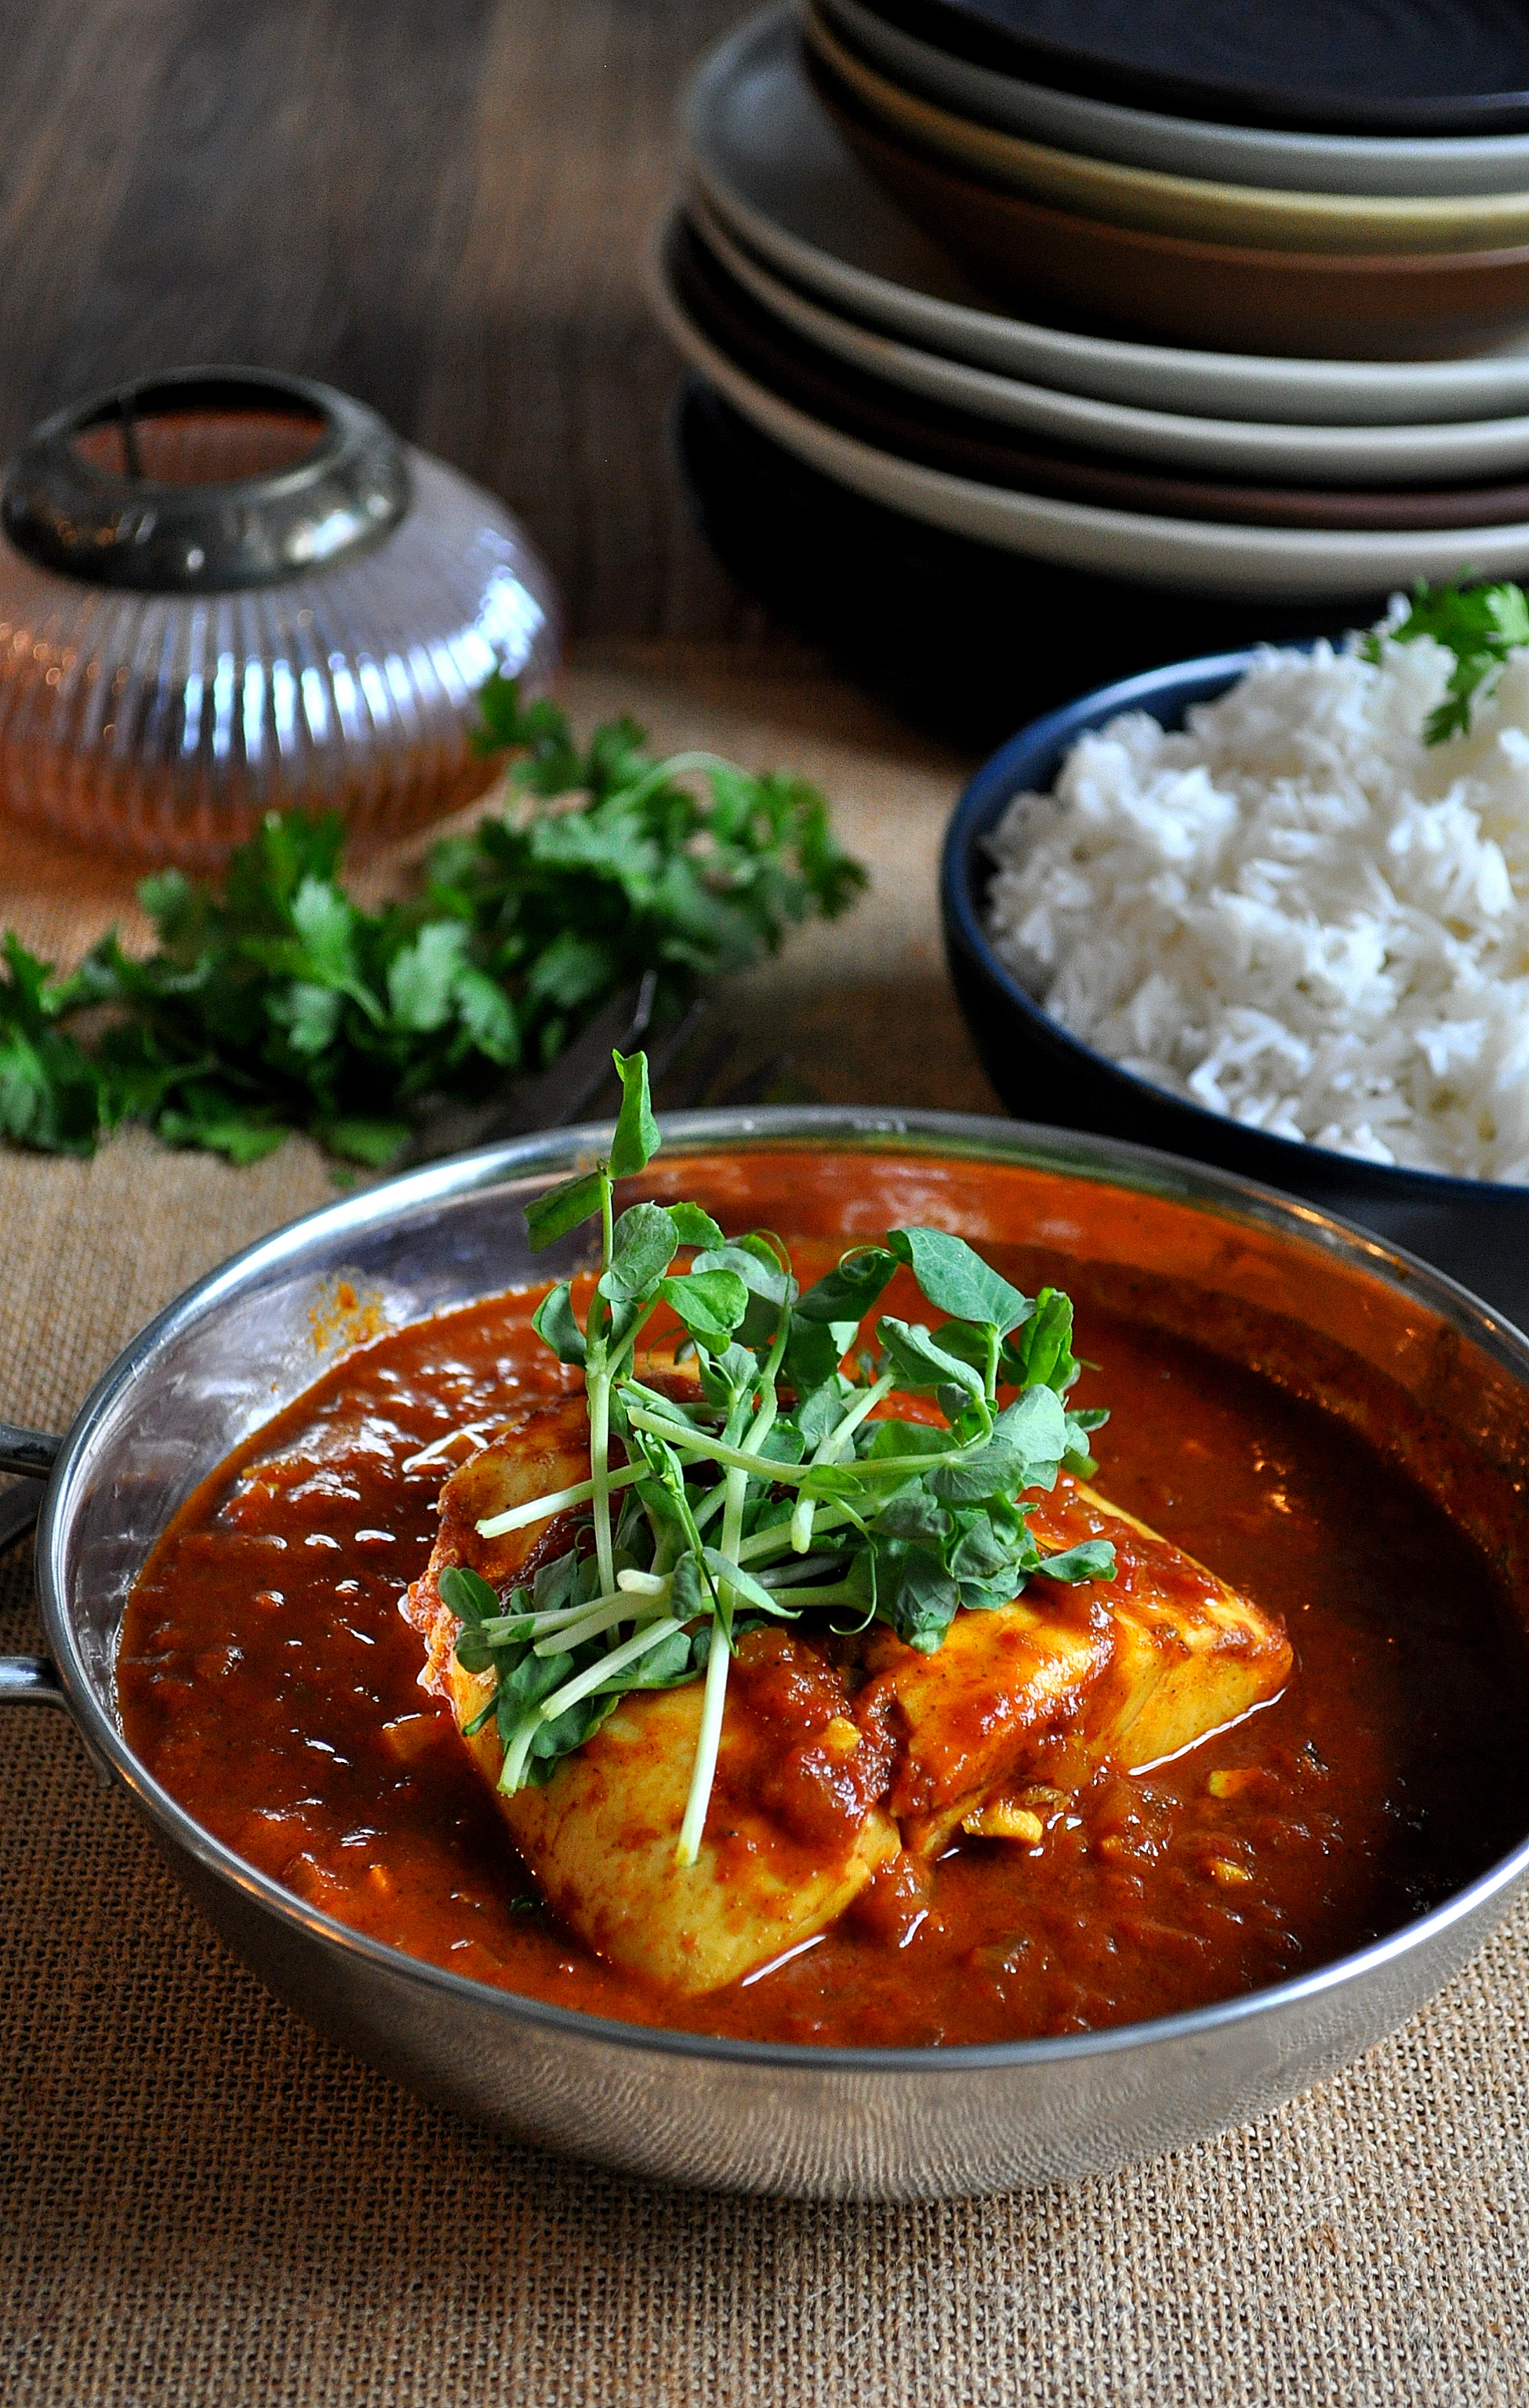 Poached Halibut in Thai Curry Broth